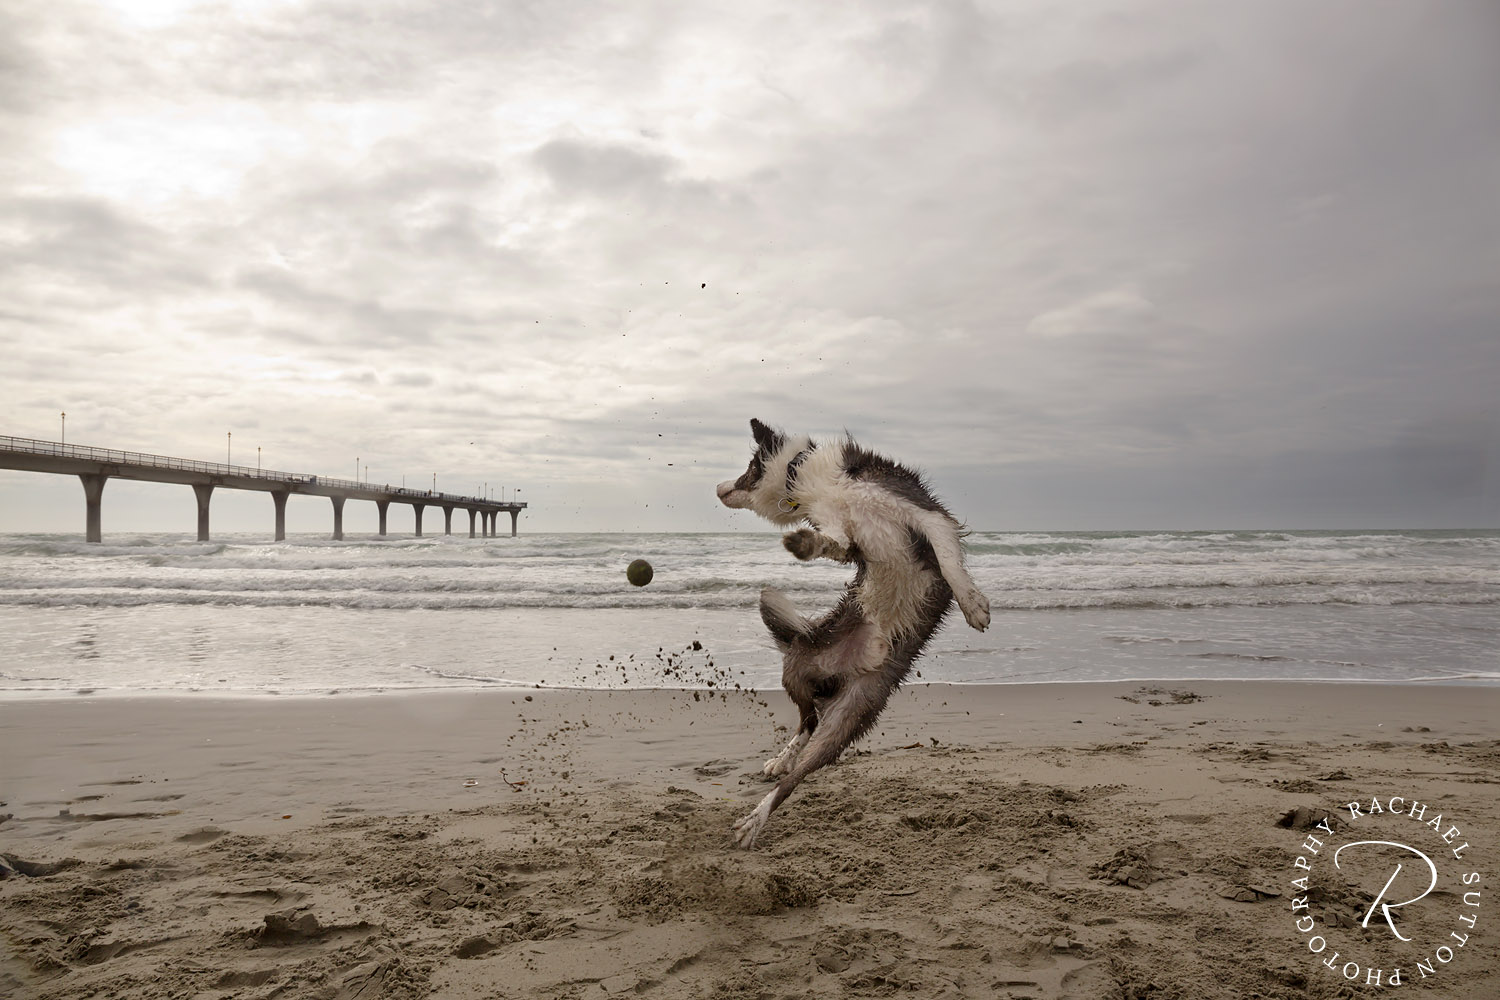 dog jumping to catch ball on beach, dog photo